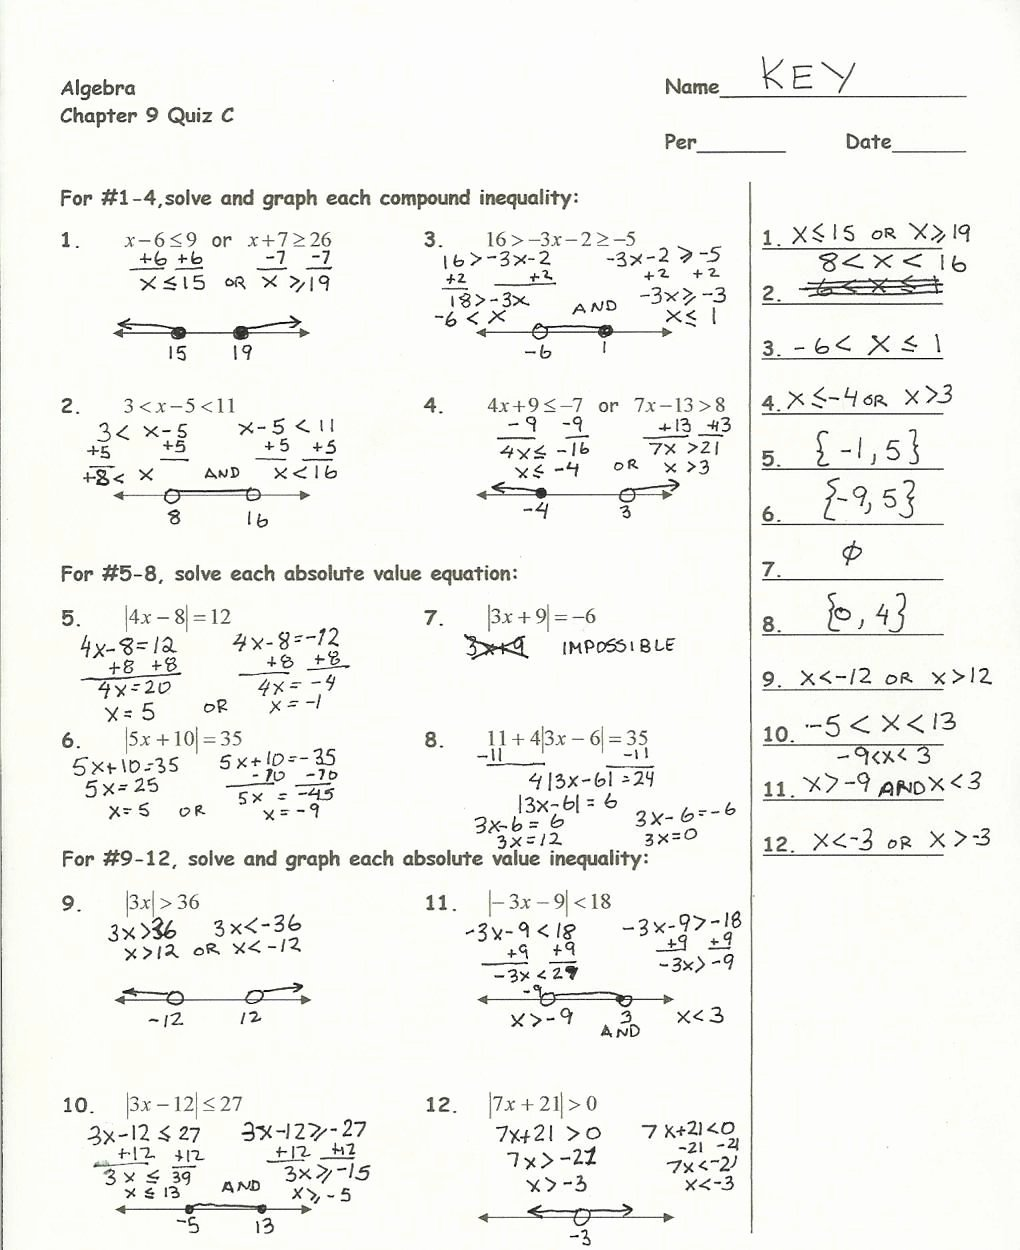 Graphing Quadratic Functions Worksheet Answers Best Of Graphing Parabolas Worksheet Algebra 1